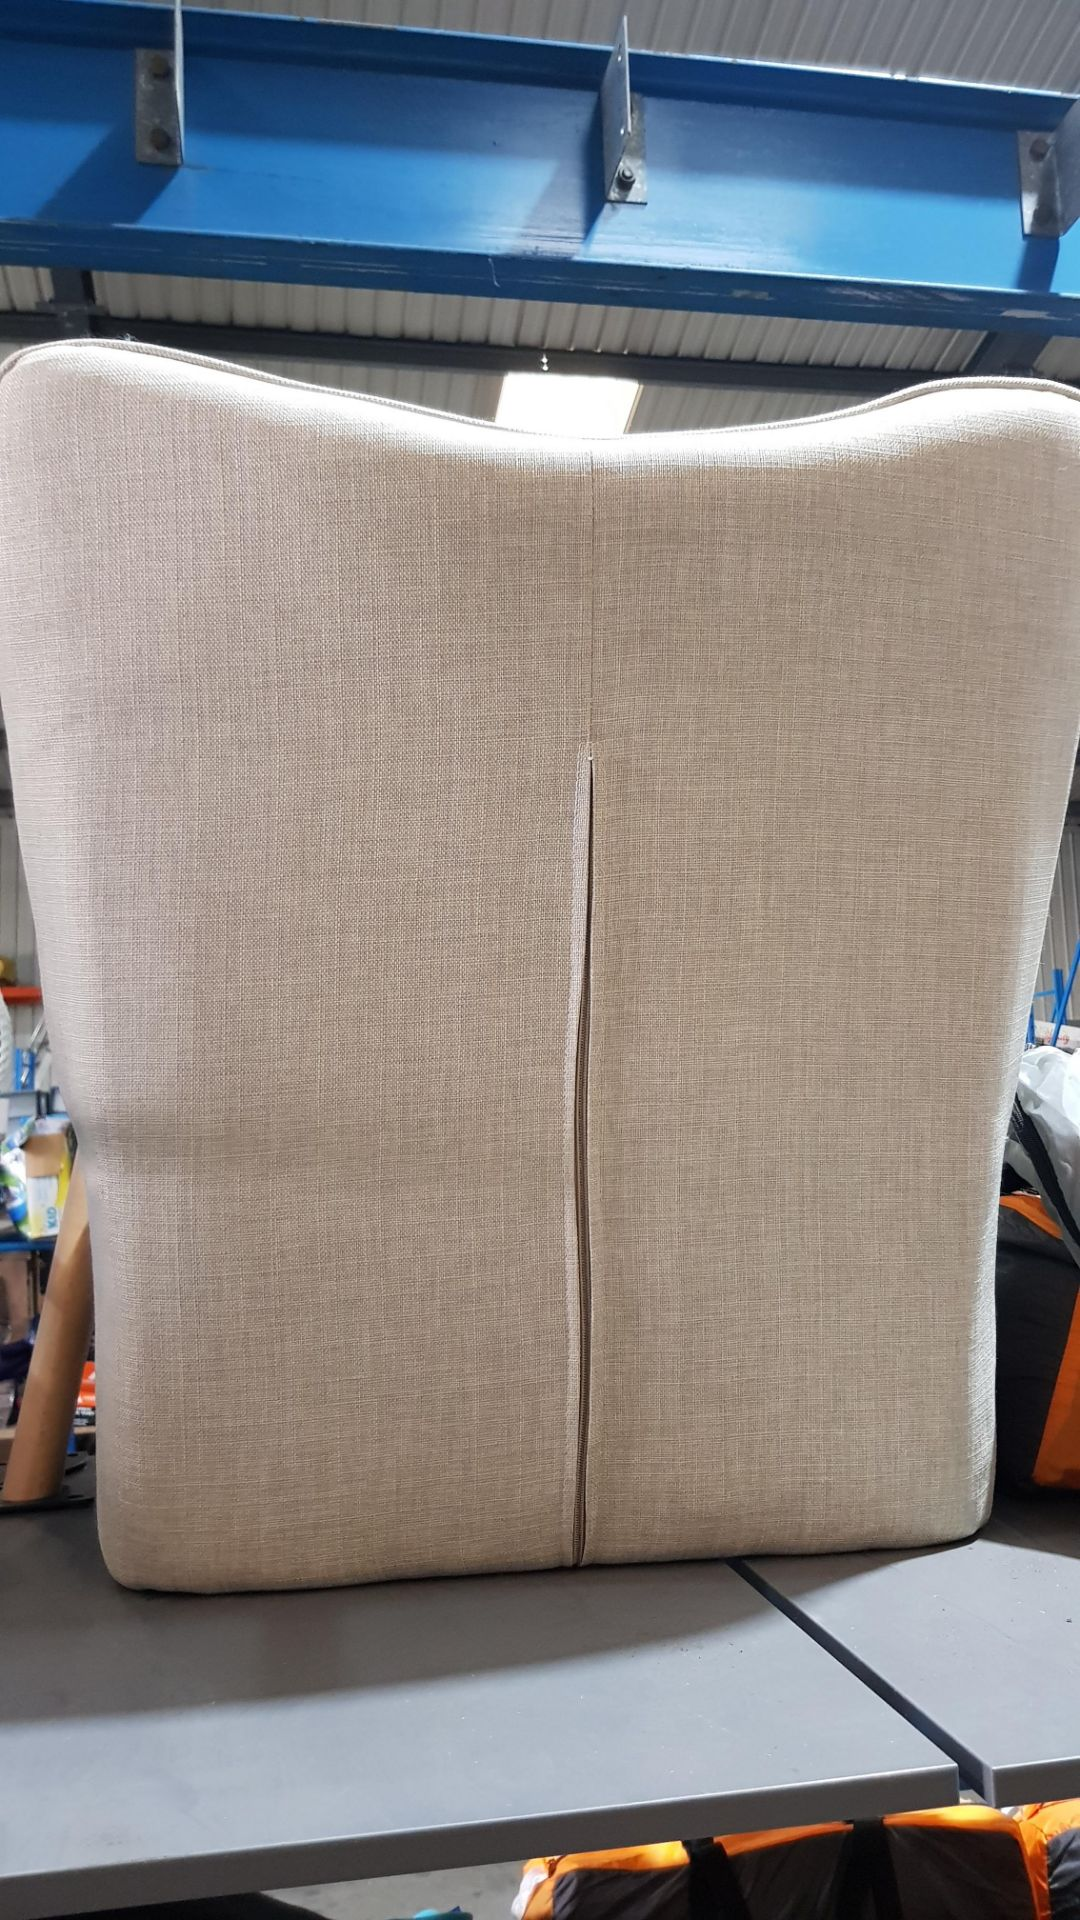 (2I) 2x Leon Beige Lounge Chairs (Only 1x Leg Set With This Lot). Both Units Appear Clean, Unused. - Image 6 of 7